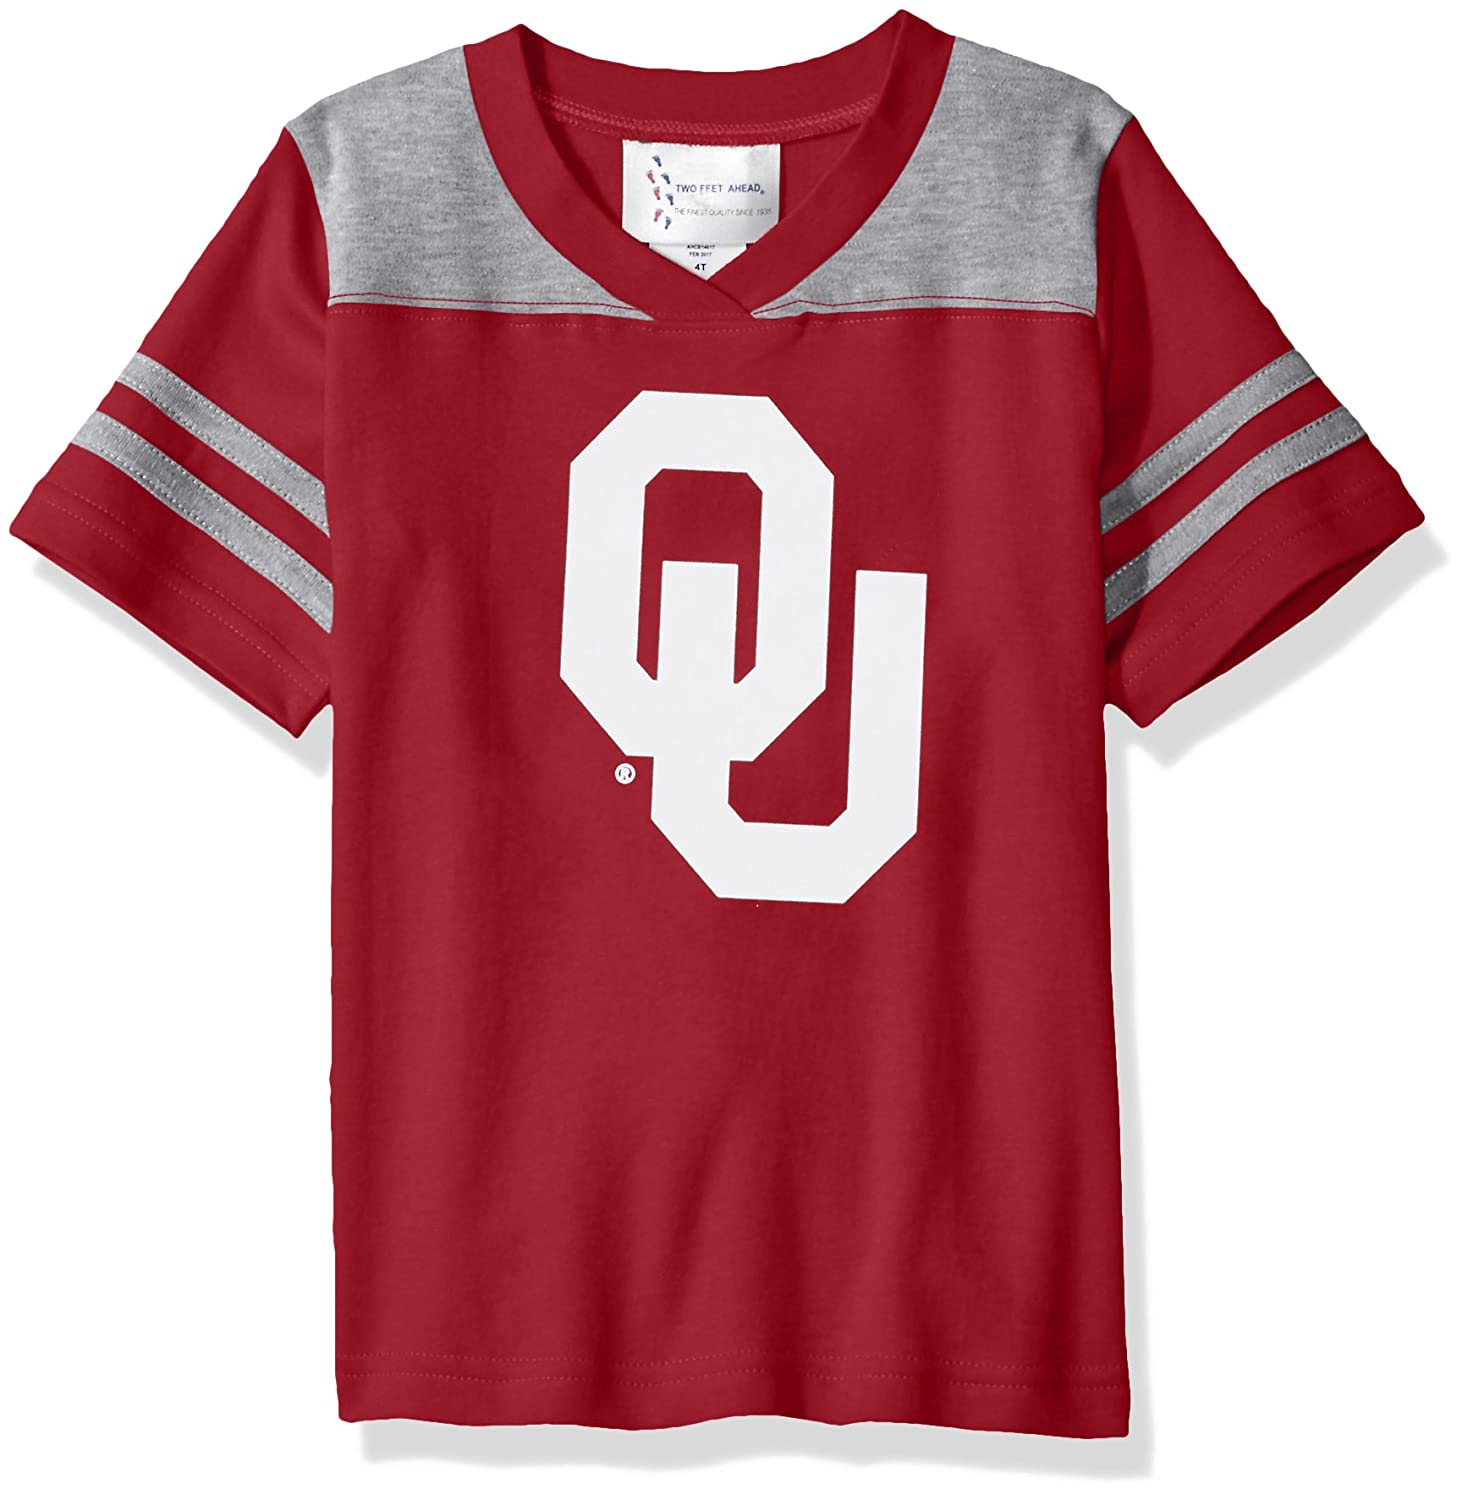 2 Two Feet Ahead NCAA Oklahoma Sooners Toddler Boys Football Shirt Crimson